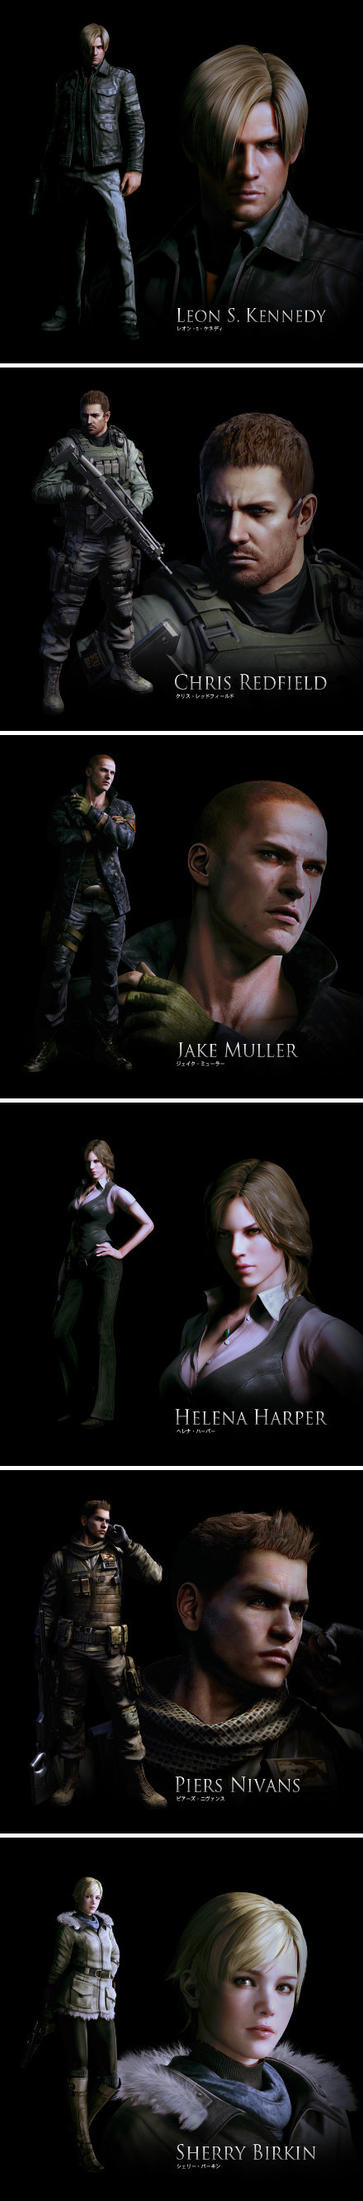 Resident evil 6: all personages by heatheryingNL